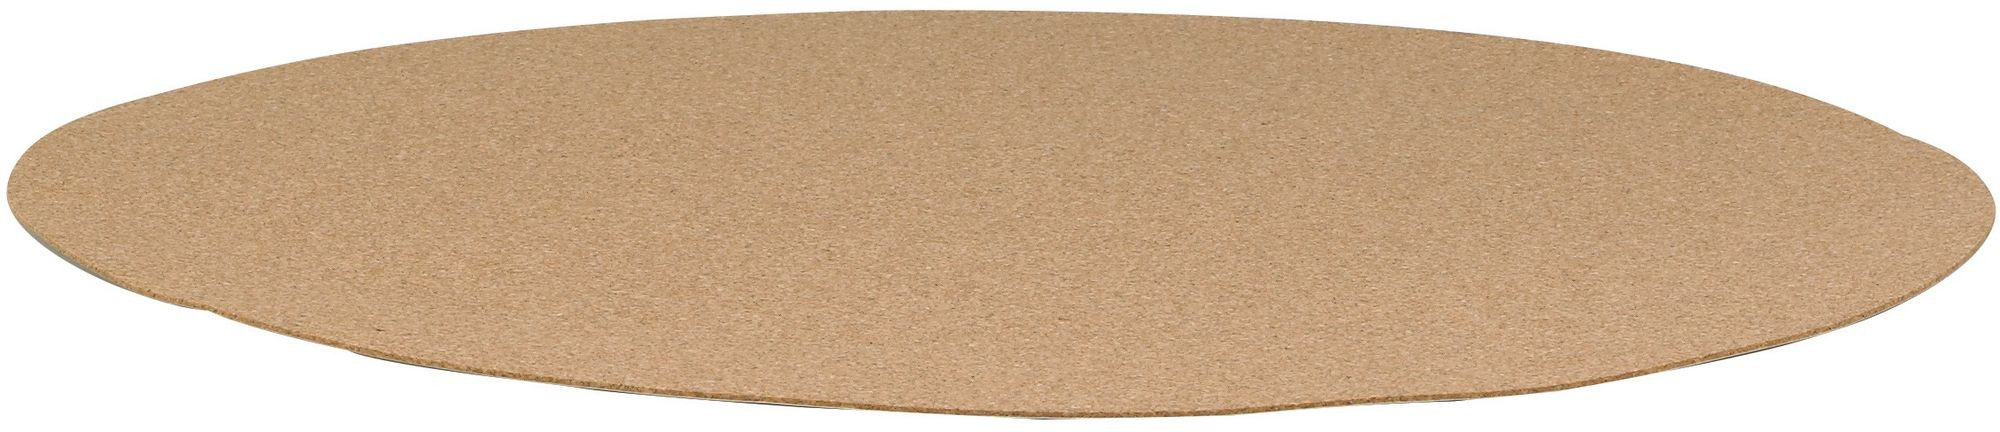 Winco TCK-16CK Replacement Cork for Tray 16""